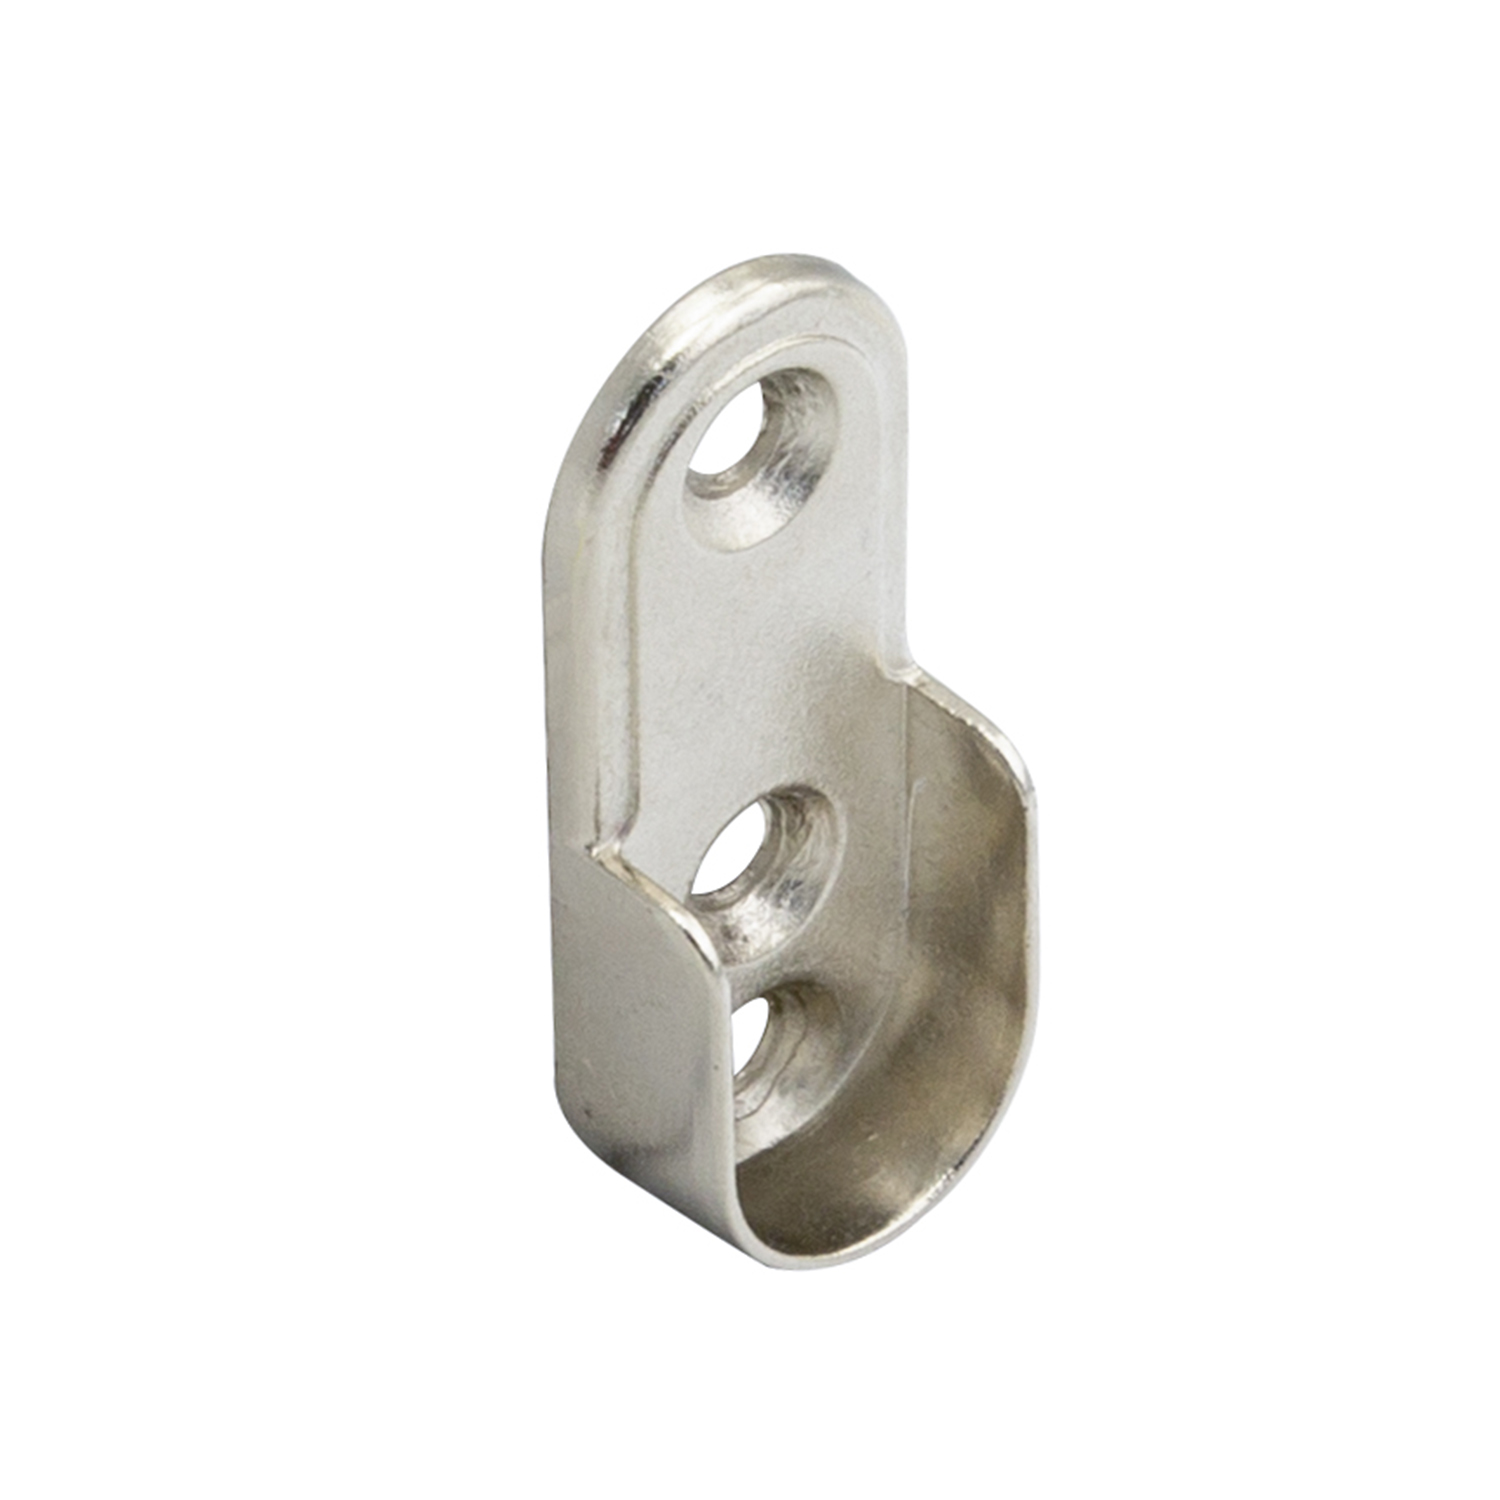 Soporte Lateral Barra Oval Niquel 15x22 mm.